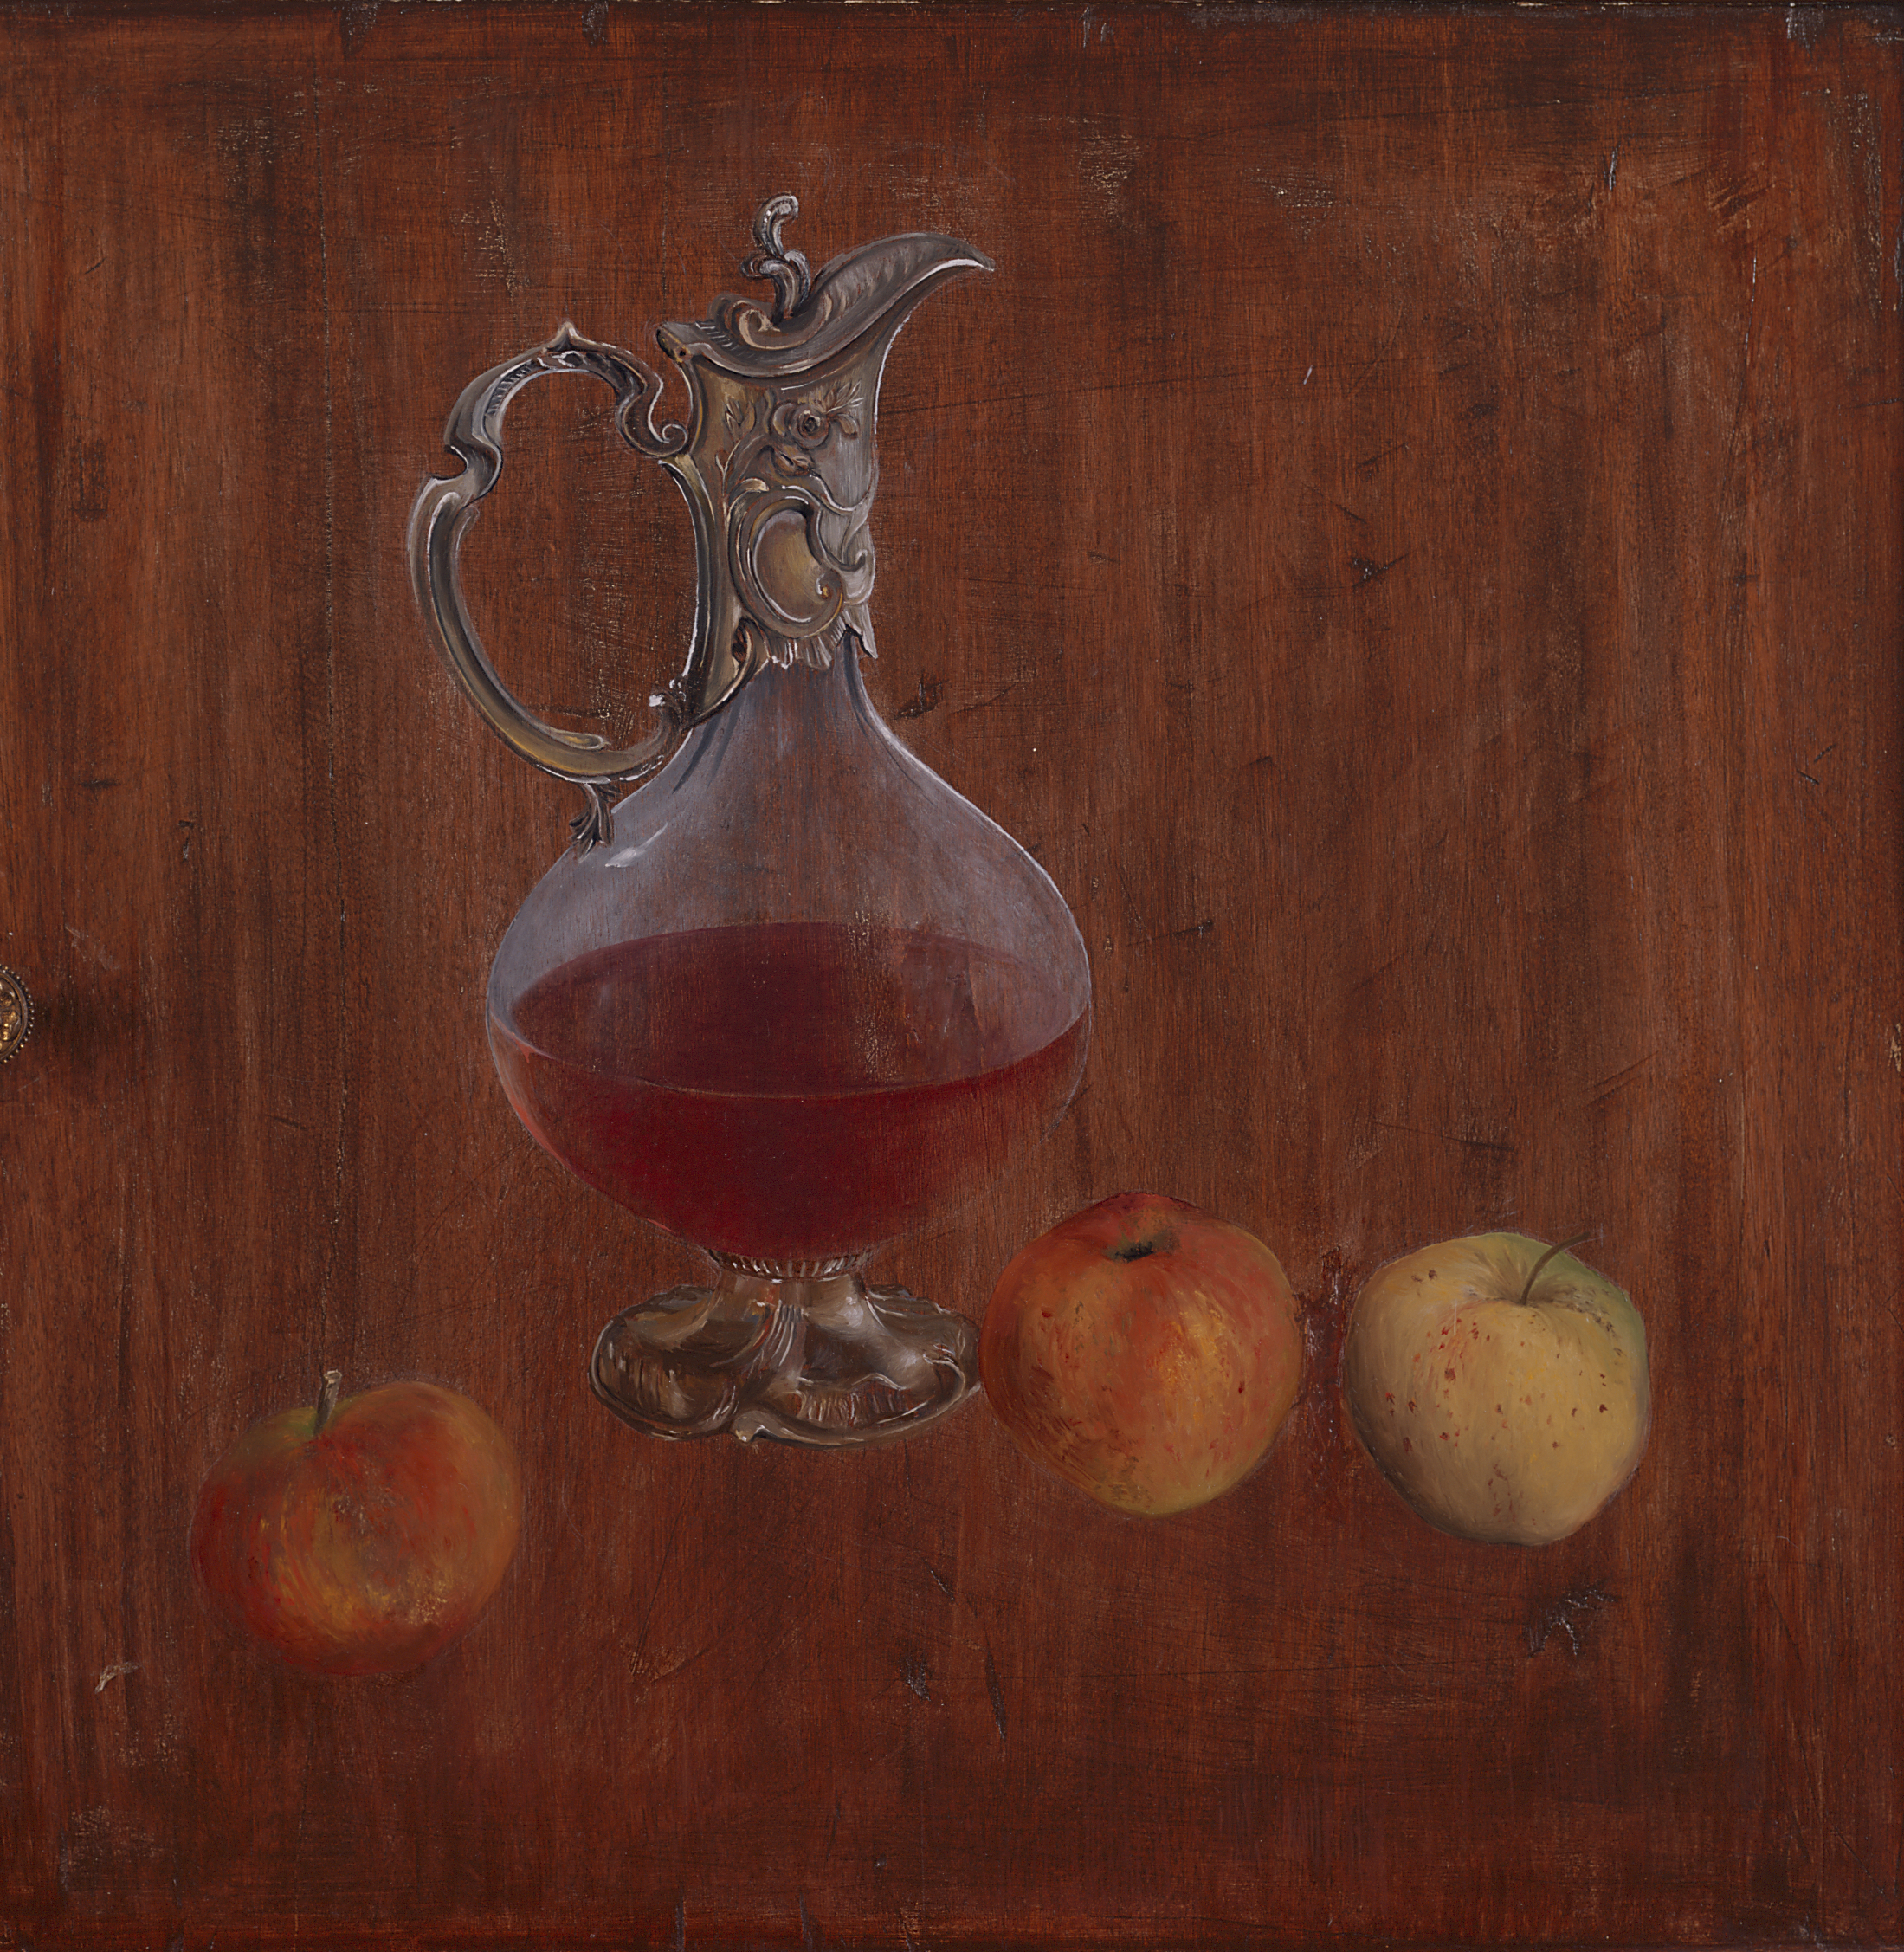 Ewer and Apples